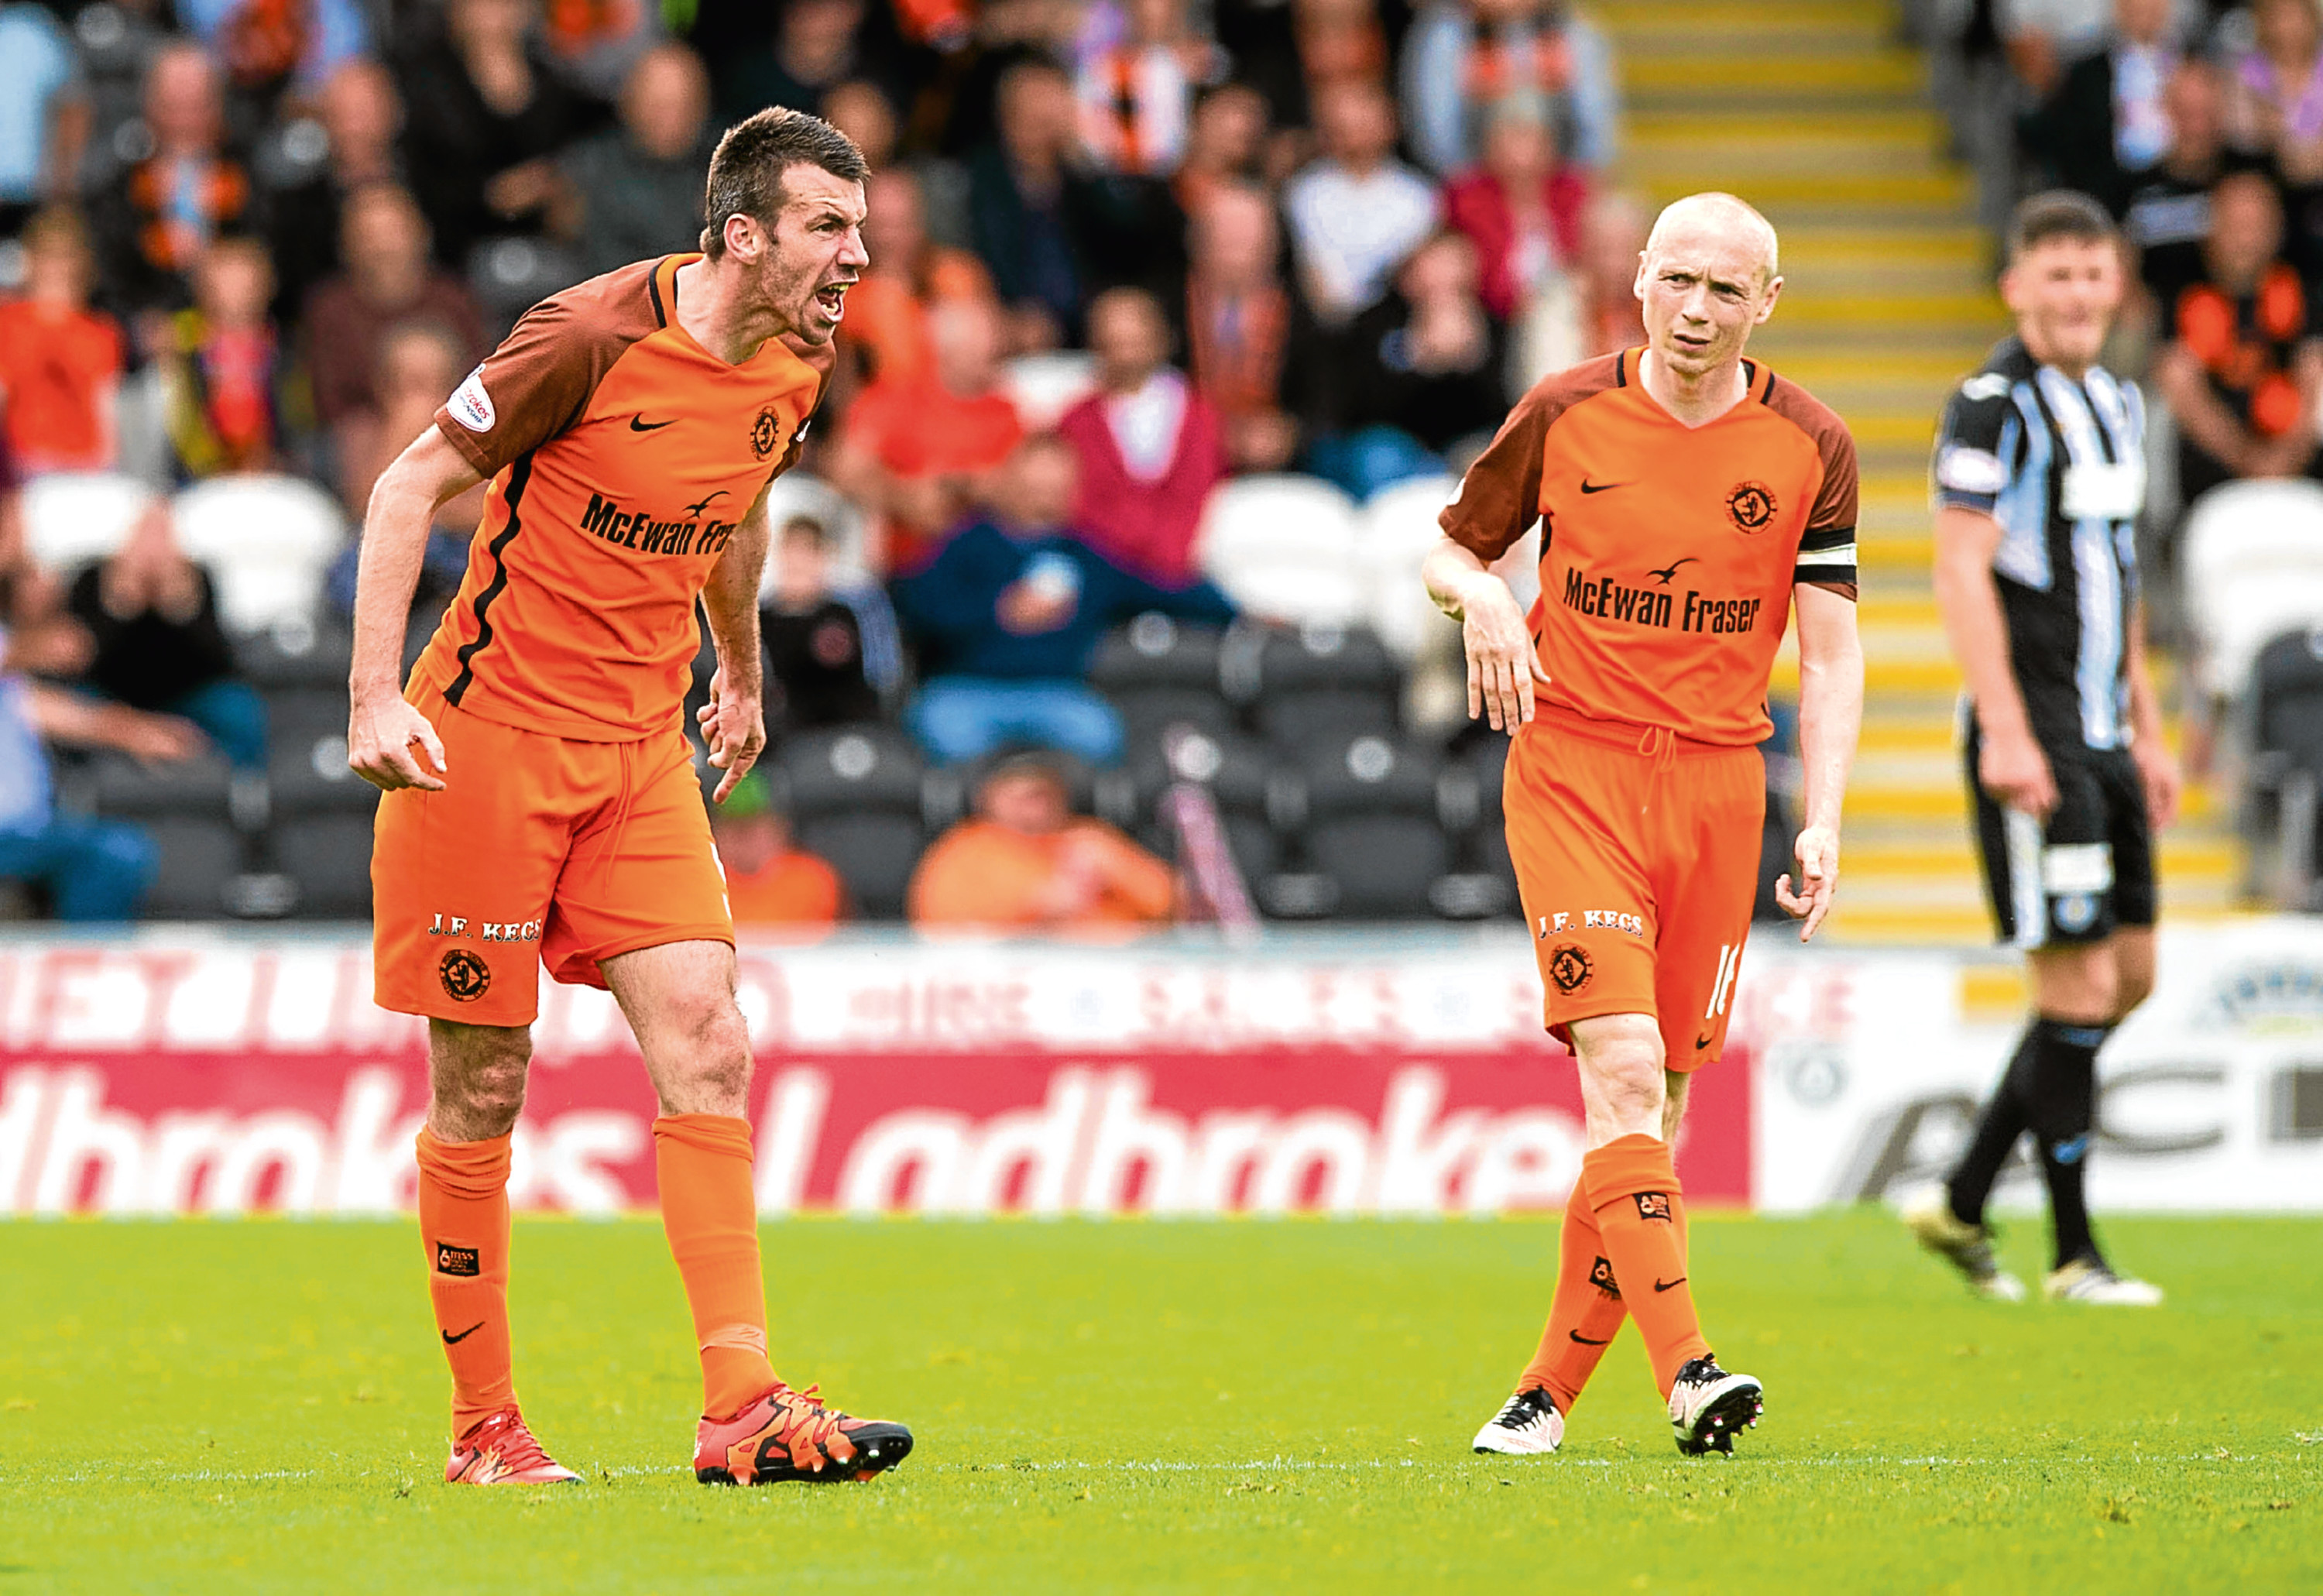 Dundee United defender Paul Quinn is raging after the 3-0 defeat by St Mirren at the weekend.